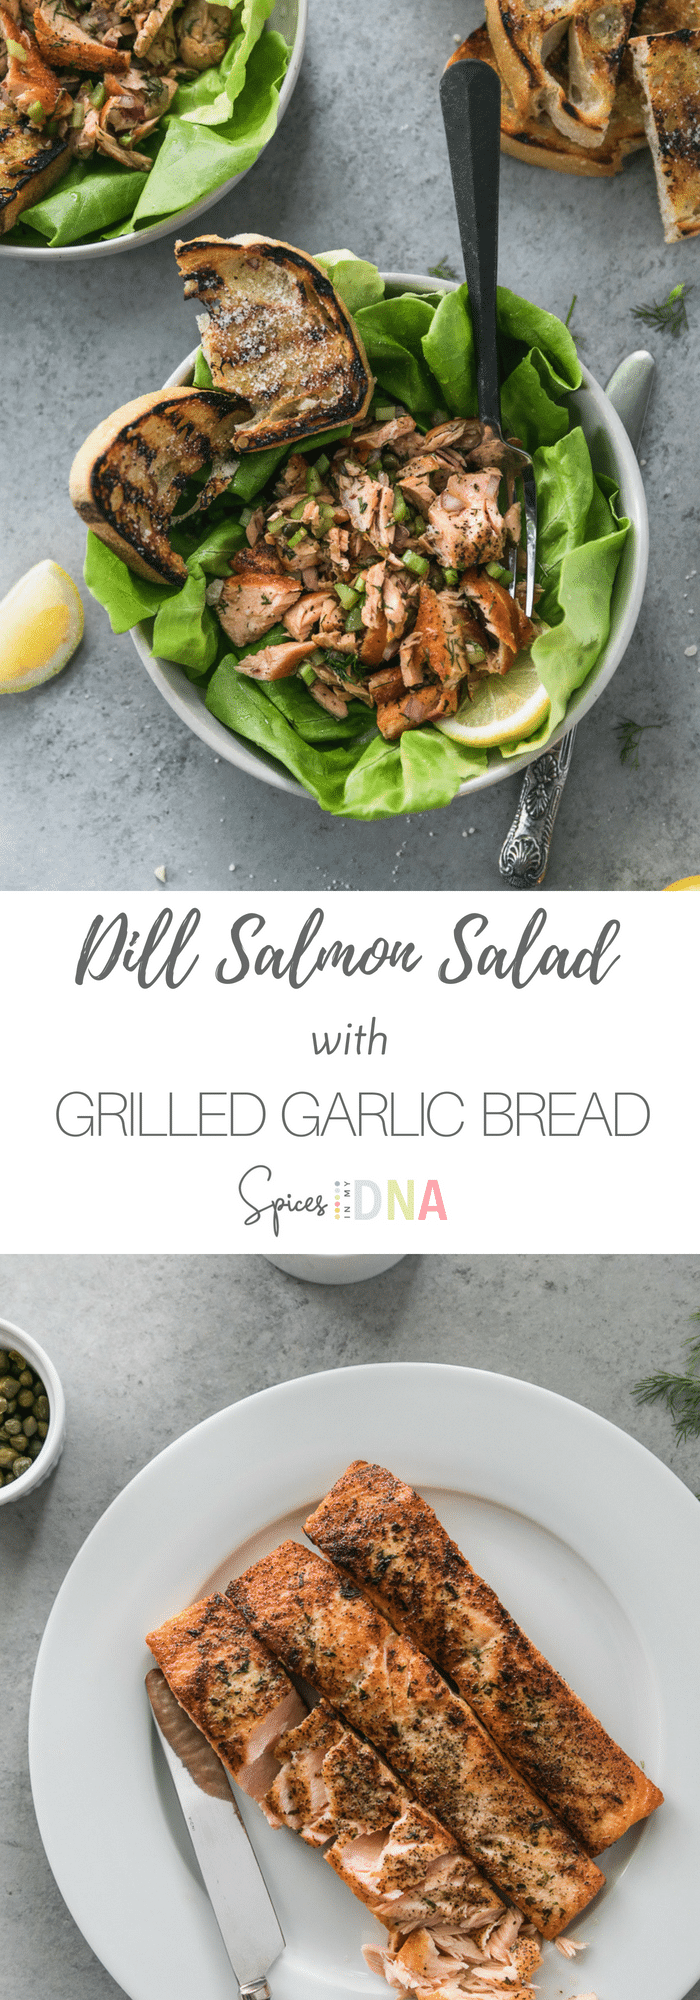 This Dill Salmon Salad with Grilled Garlic Bread is my favorite lunch as of late! The salmon salad is super bright, lemony, a little vinegar-y, and completely addicting. I love serving it over beautiful, soft butter lettuce and grilled garlic parmesan bread! #salmon #salad #easymeal